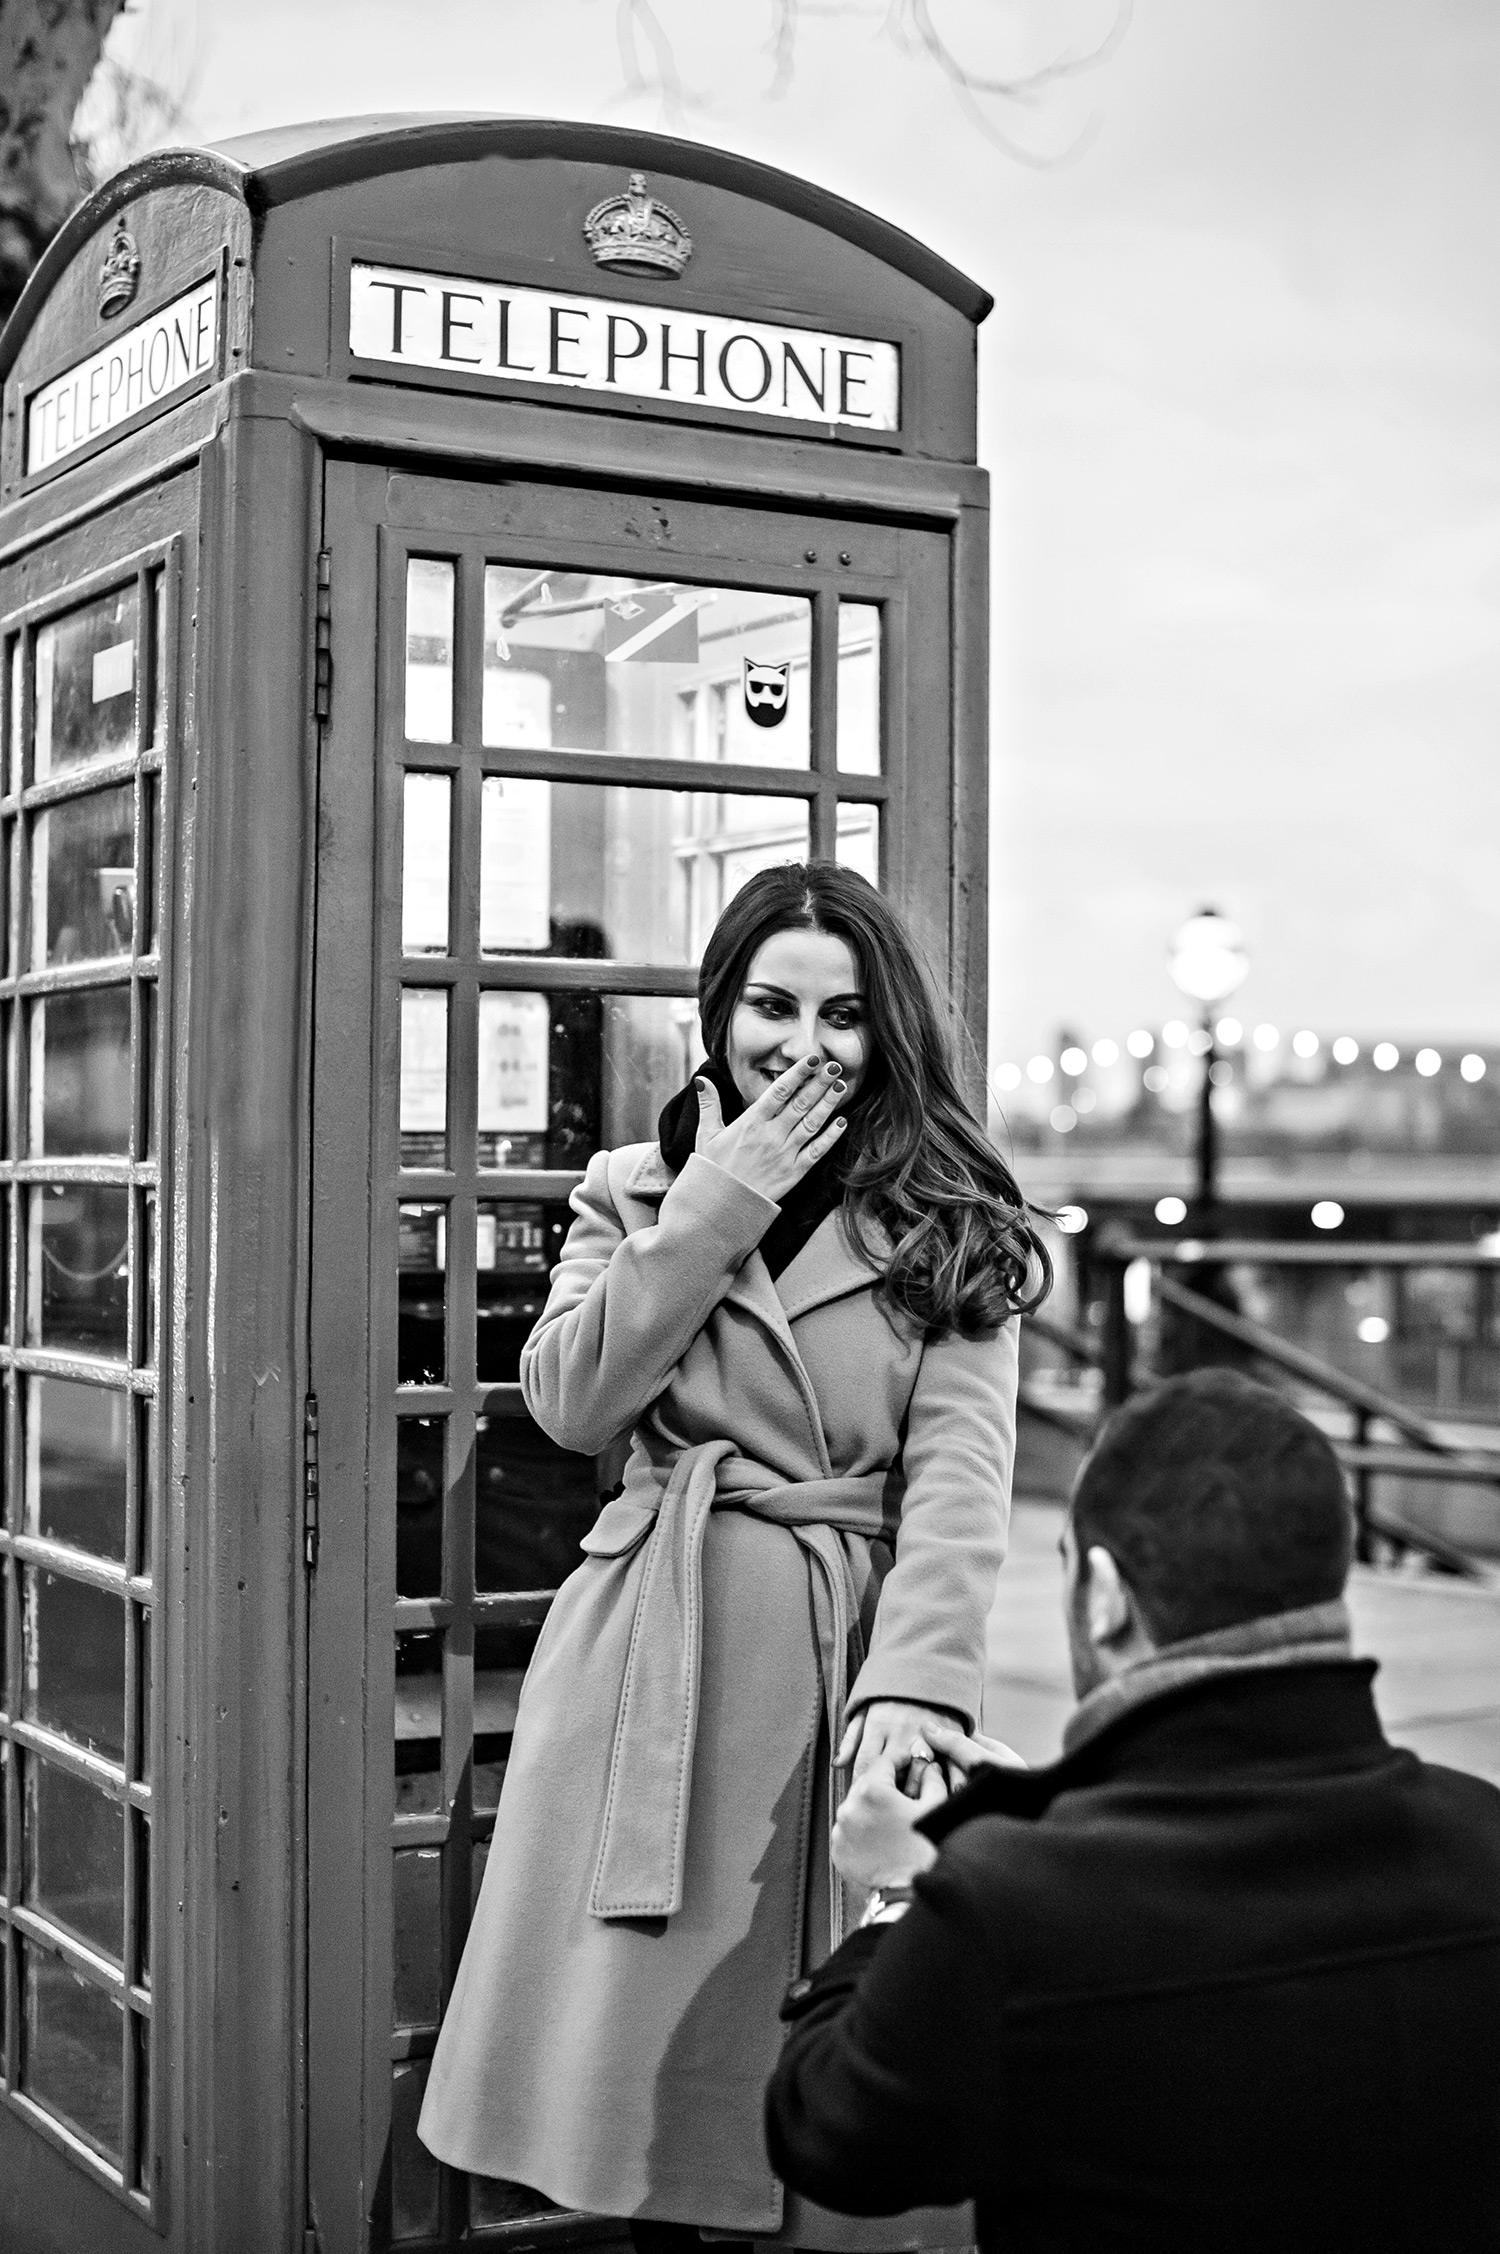 sesiune logodna Londra, sedinta logodna, sesiune foto Londra, sedinta foto Londra, sedinta logodna Londra, photosession in London, engagement session in London, engagement photosession in London, fotograf de nunta, fotograf bucuresti, fotografie nunta